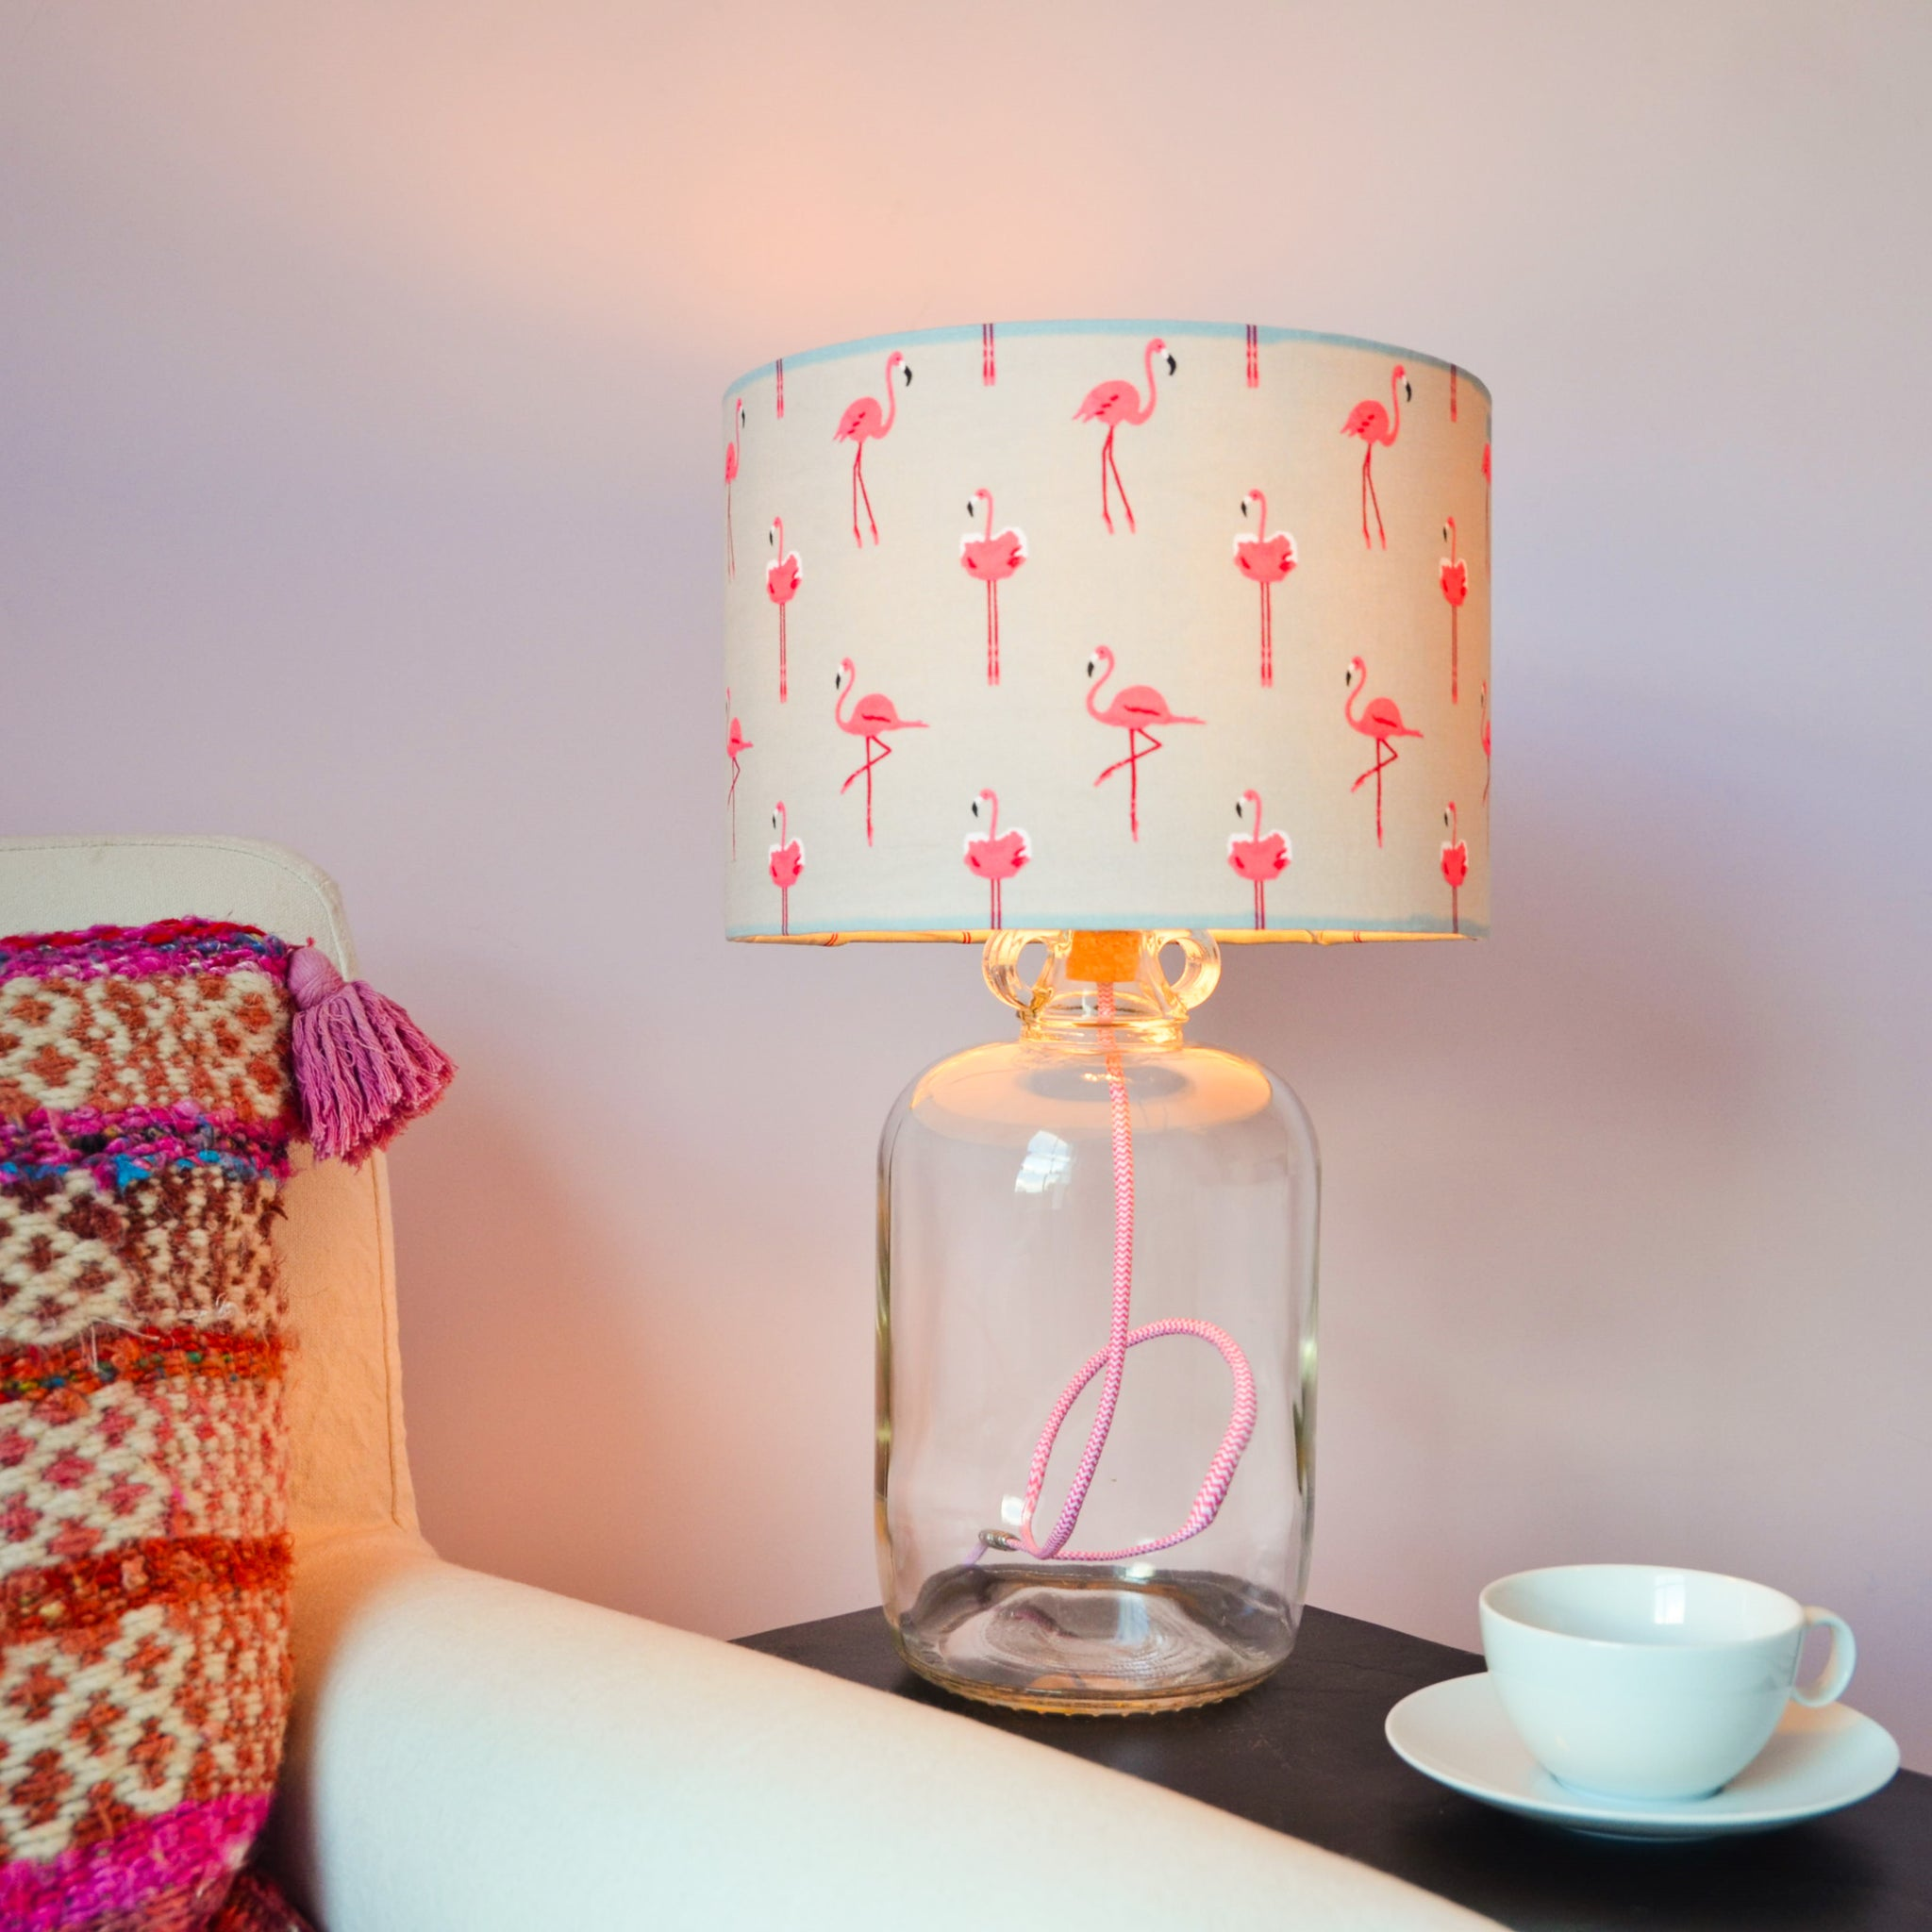 Demijohn Light with Pink and White Fabric Cable, plus LED Filament Lamp